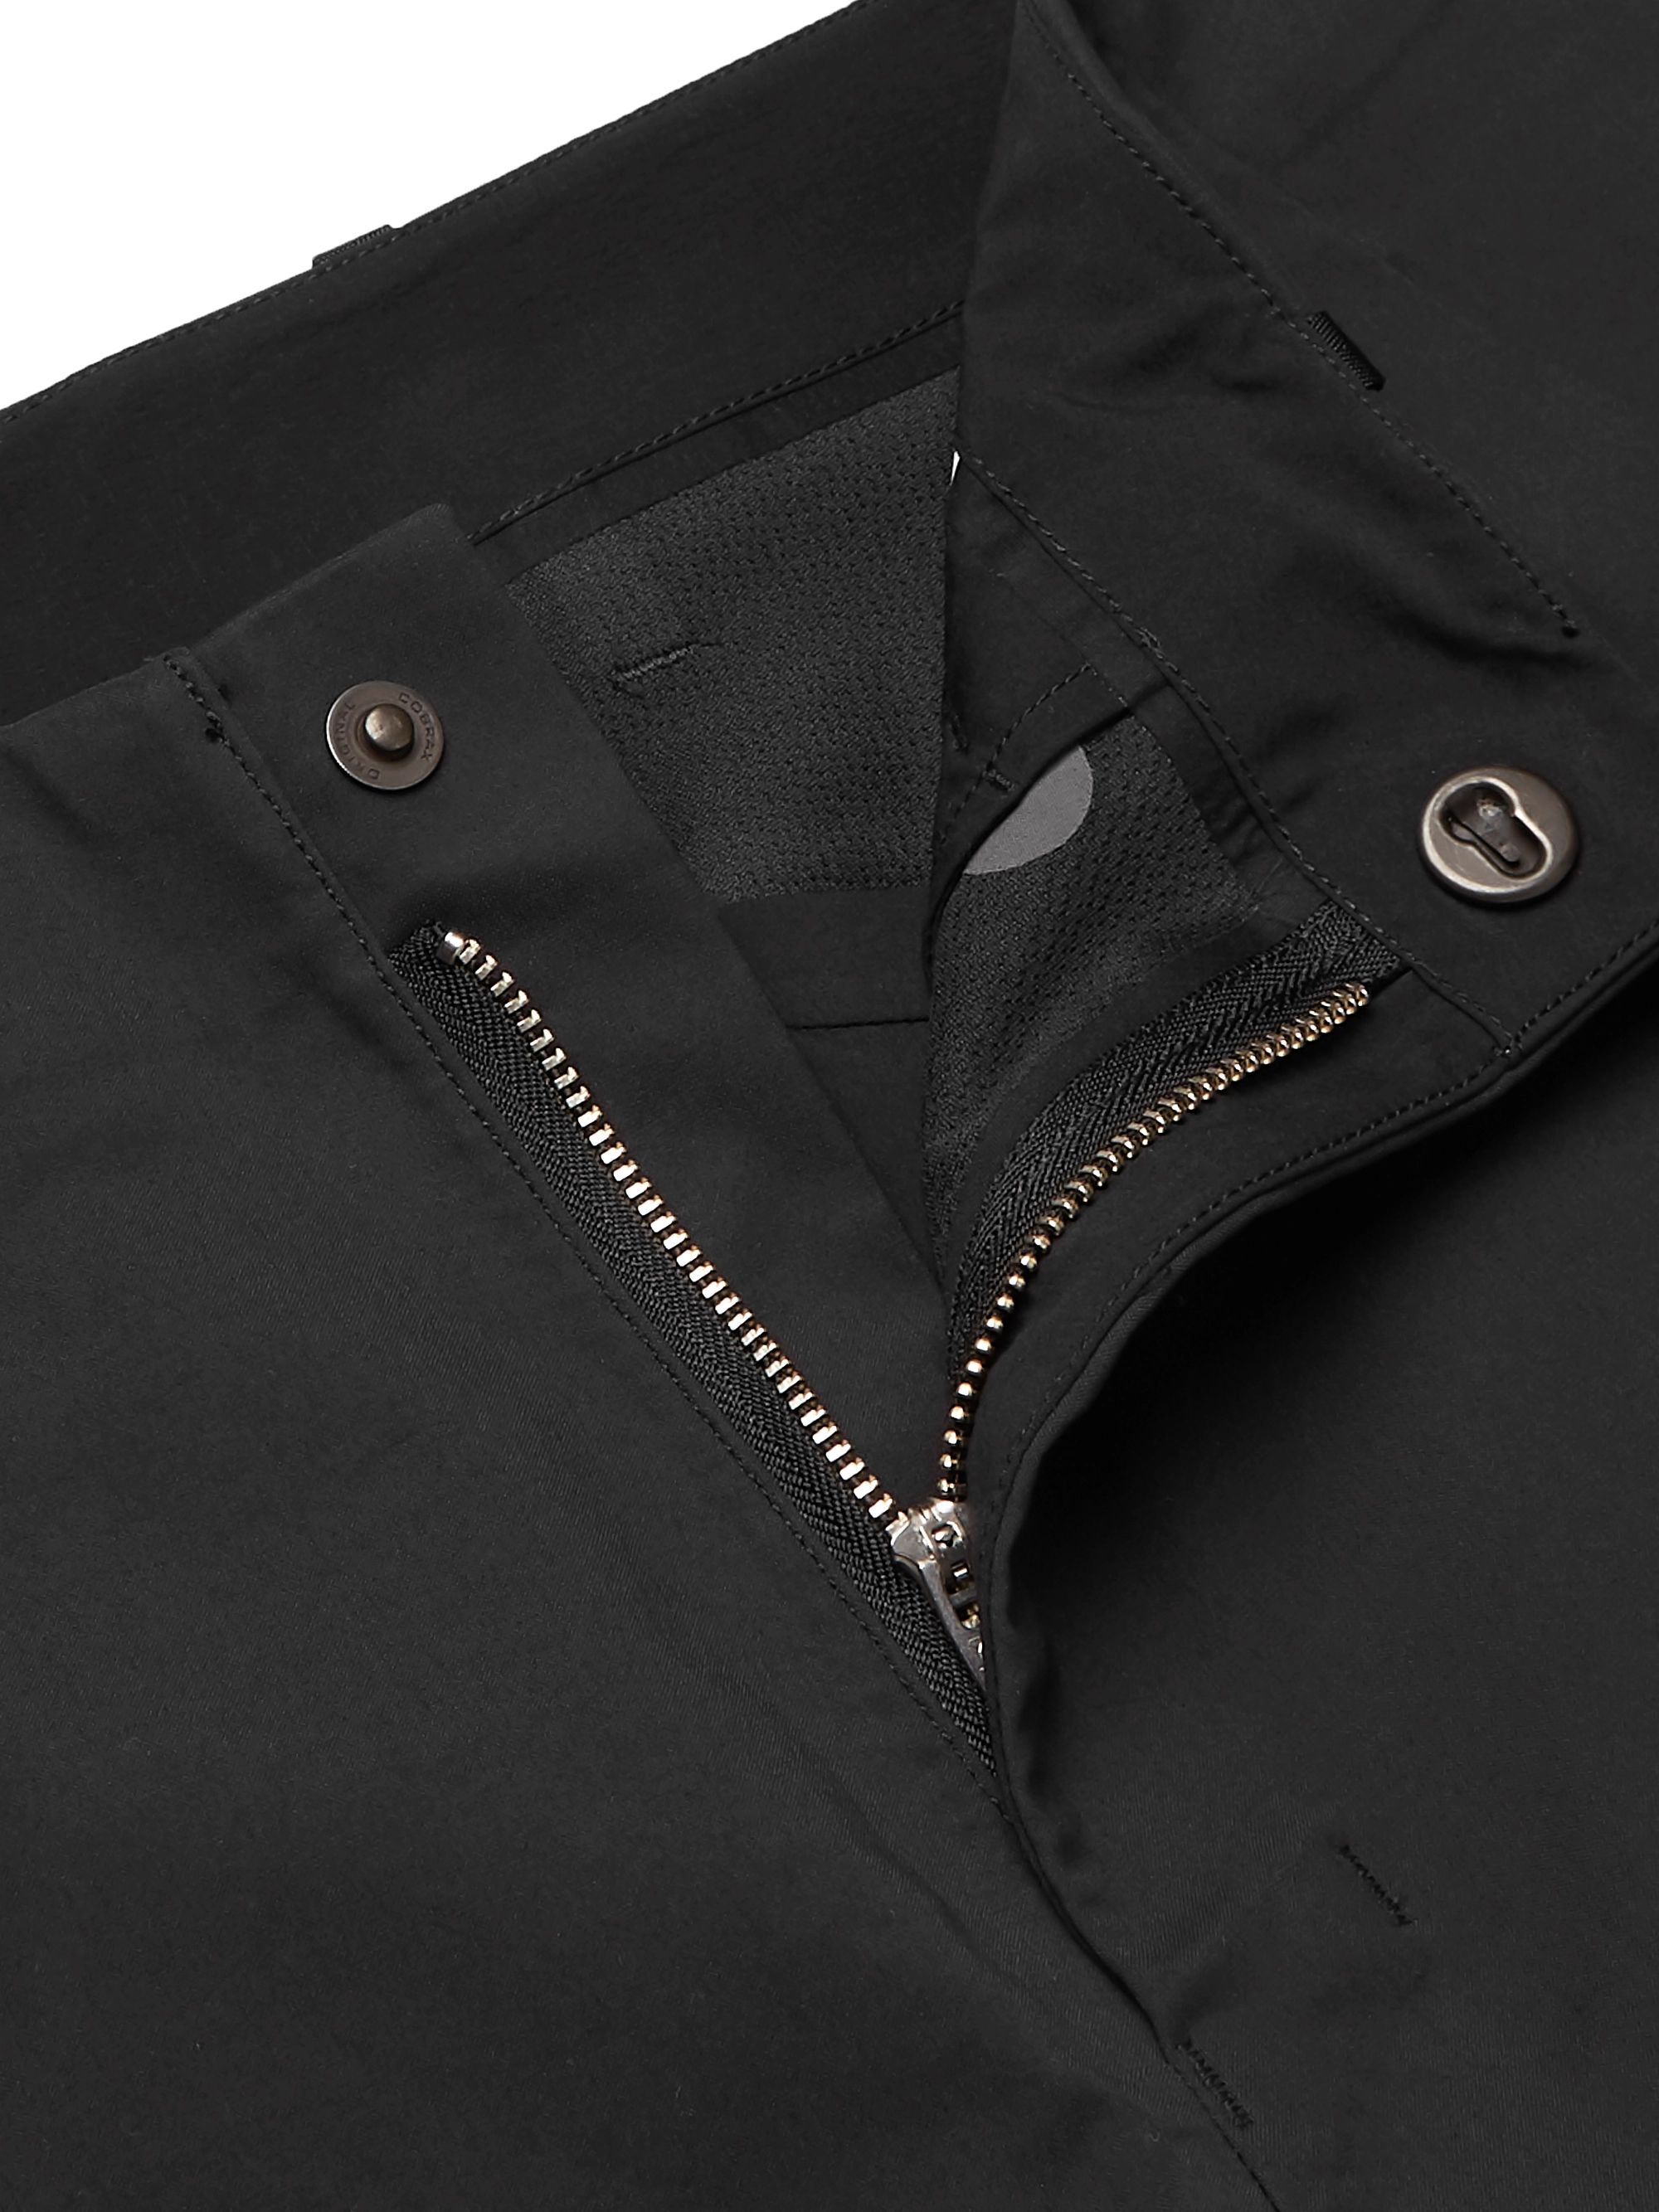 Veilance Indisce Slim-Fit Panelled GORE WINDSTOPPER Trousers